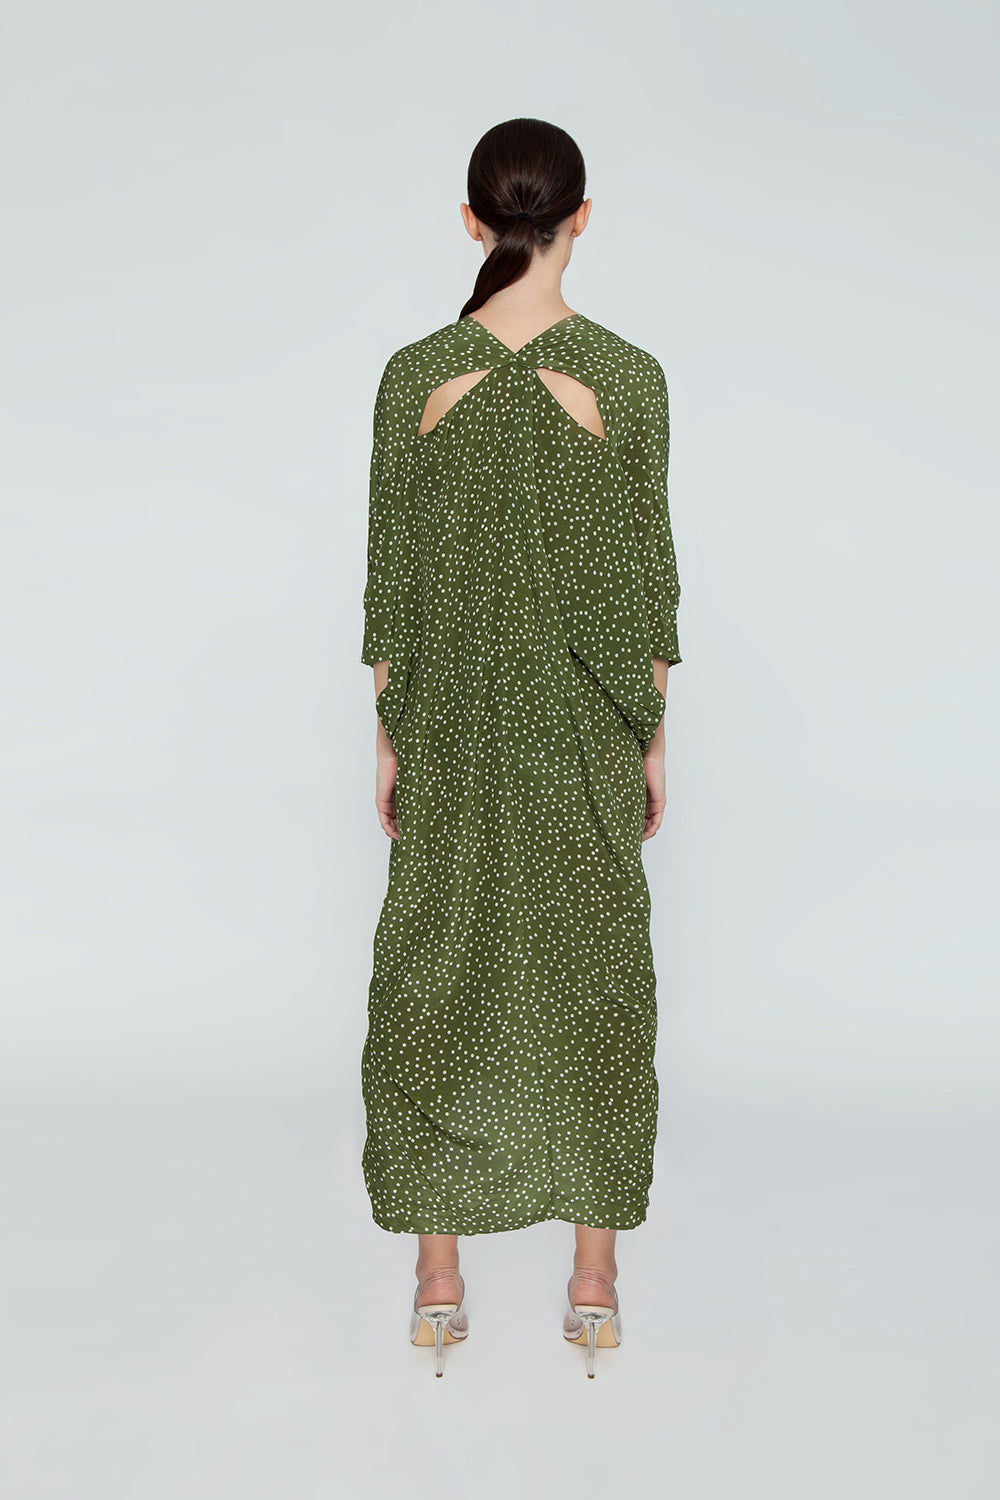 ADRIANA DEGREAS Silk Crepe De Chine Long Kaftan - Mille Punti Green Dot Print Cover Up | Mille Punti Green Dot Print| Adriana Degreas Silk Crepe De Chine Long Kaftan - Mille Punti Green Dot Print Long kaftan V neckline  Flowy sleeves  Cut out back detail  Back View